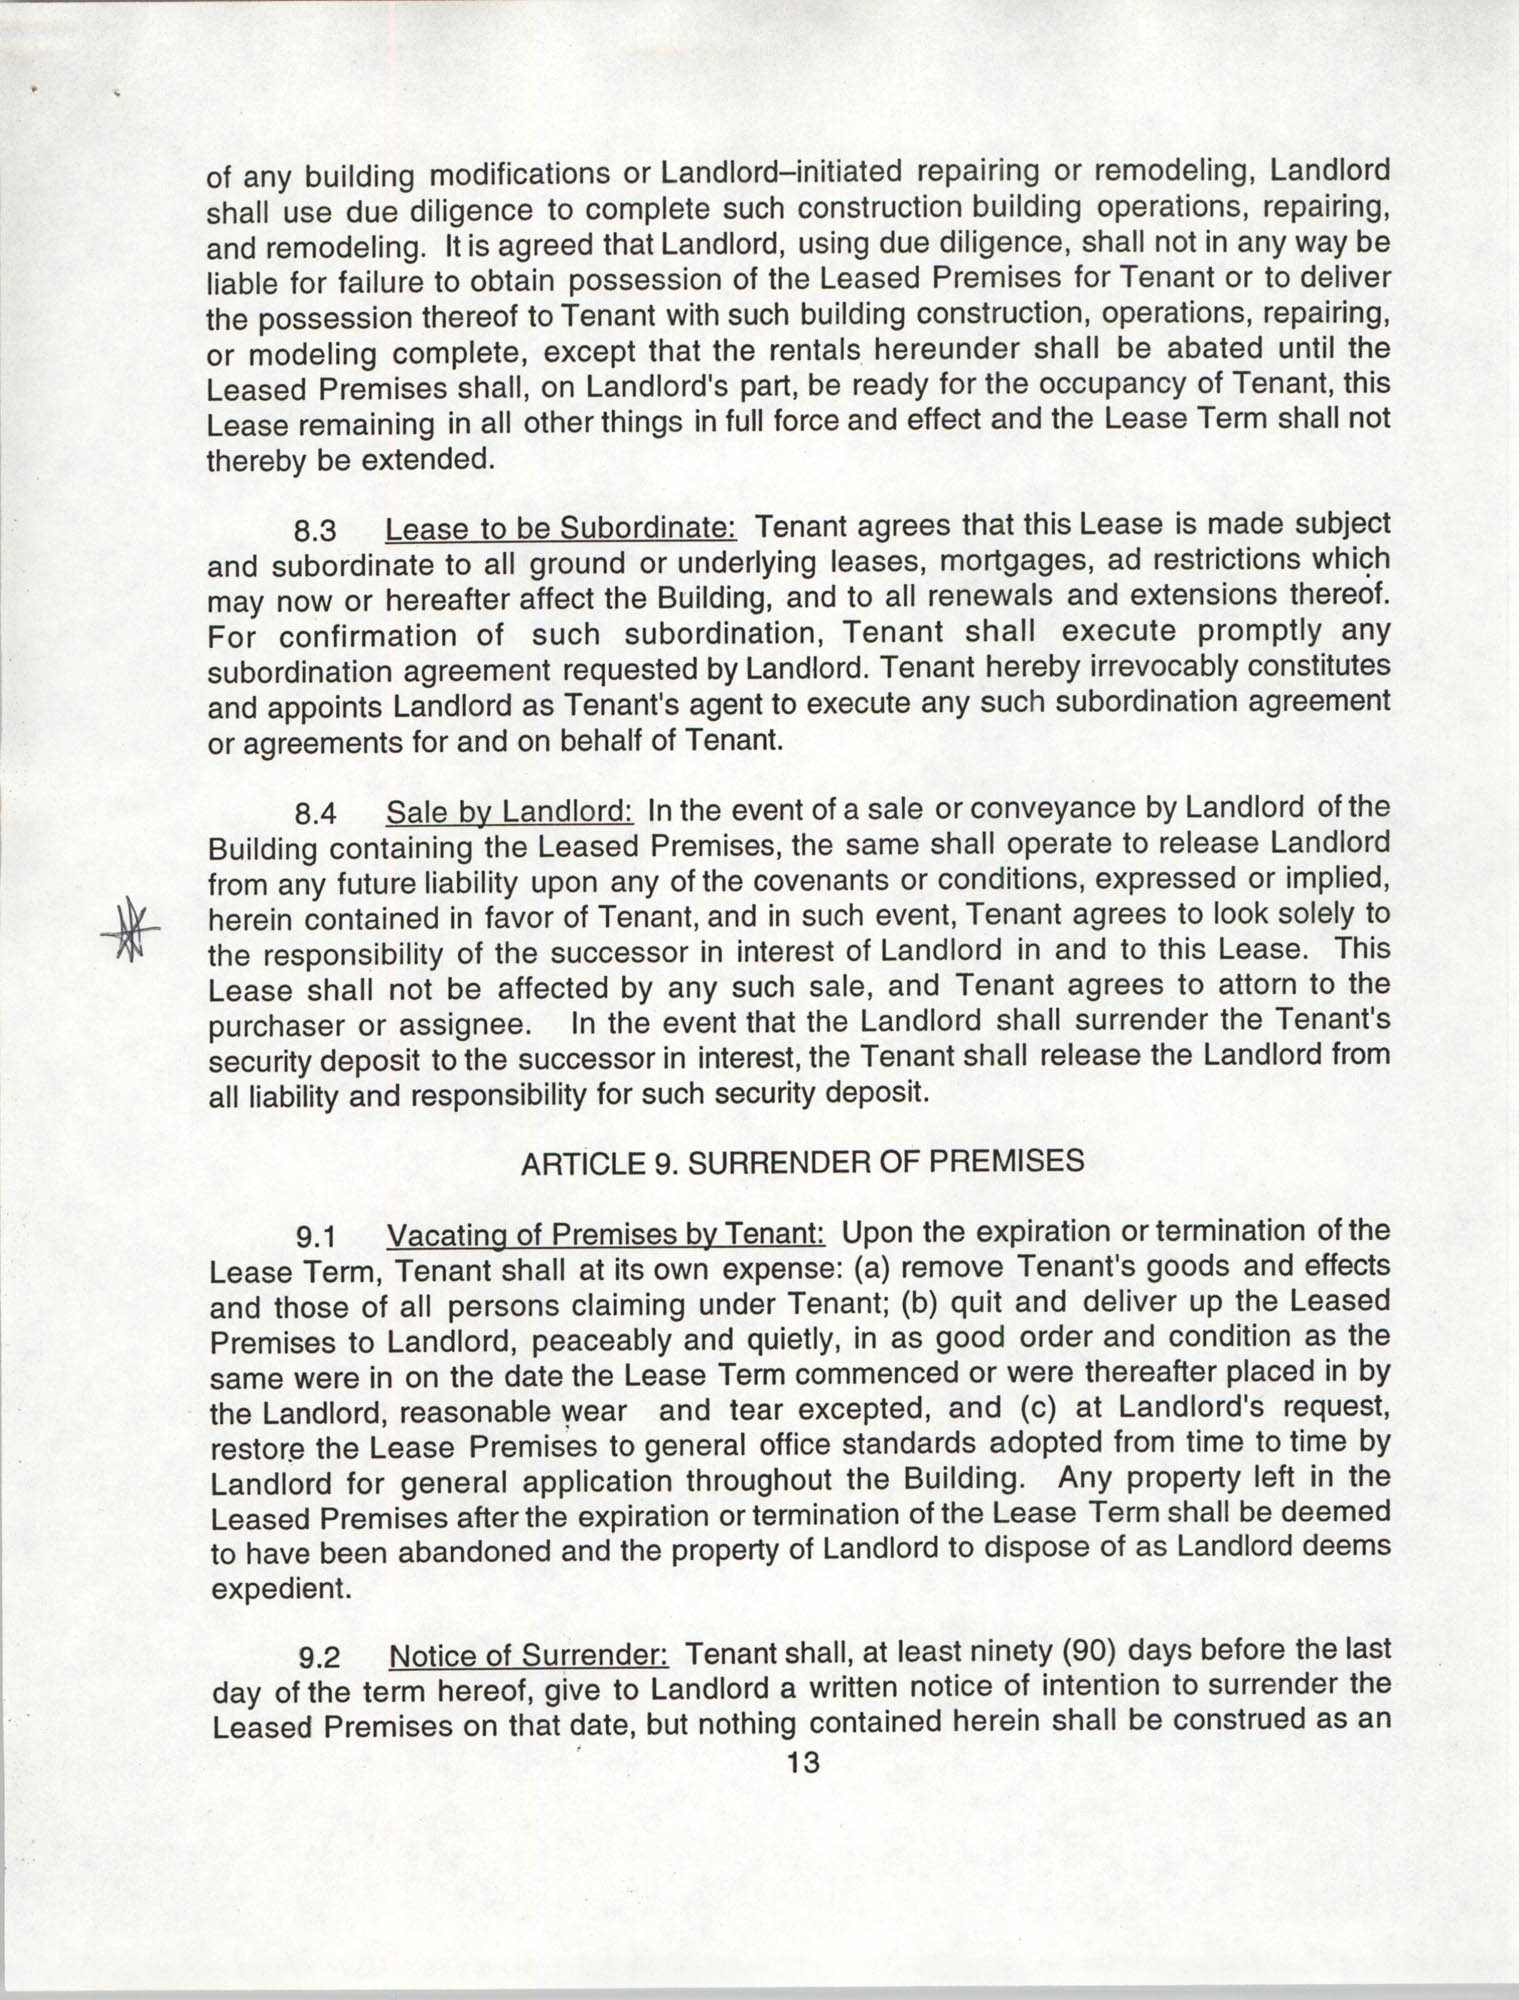 Charleston Branch of the NAACP Leasing Agreement, July 1994 to June 1995, Page 13